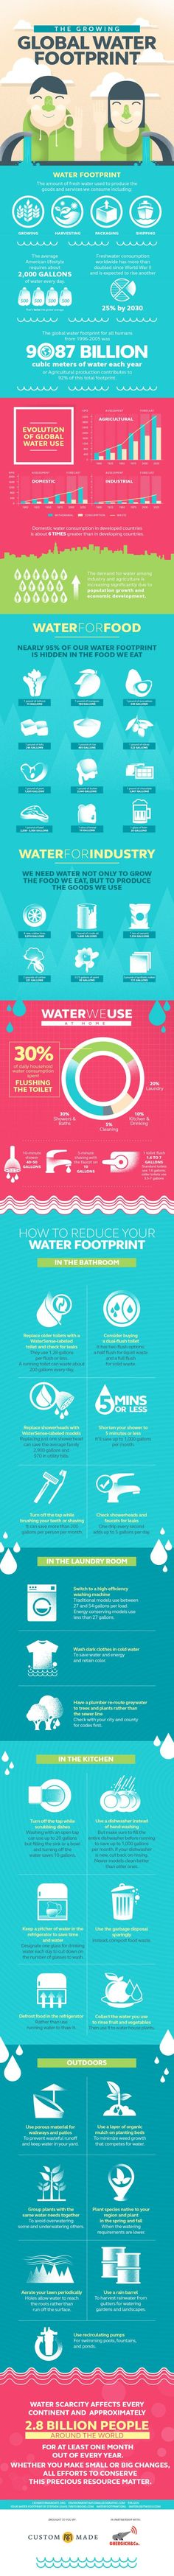 The Growing Global Water Footprint #infographic #Water #Food #recyclinginfographic